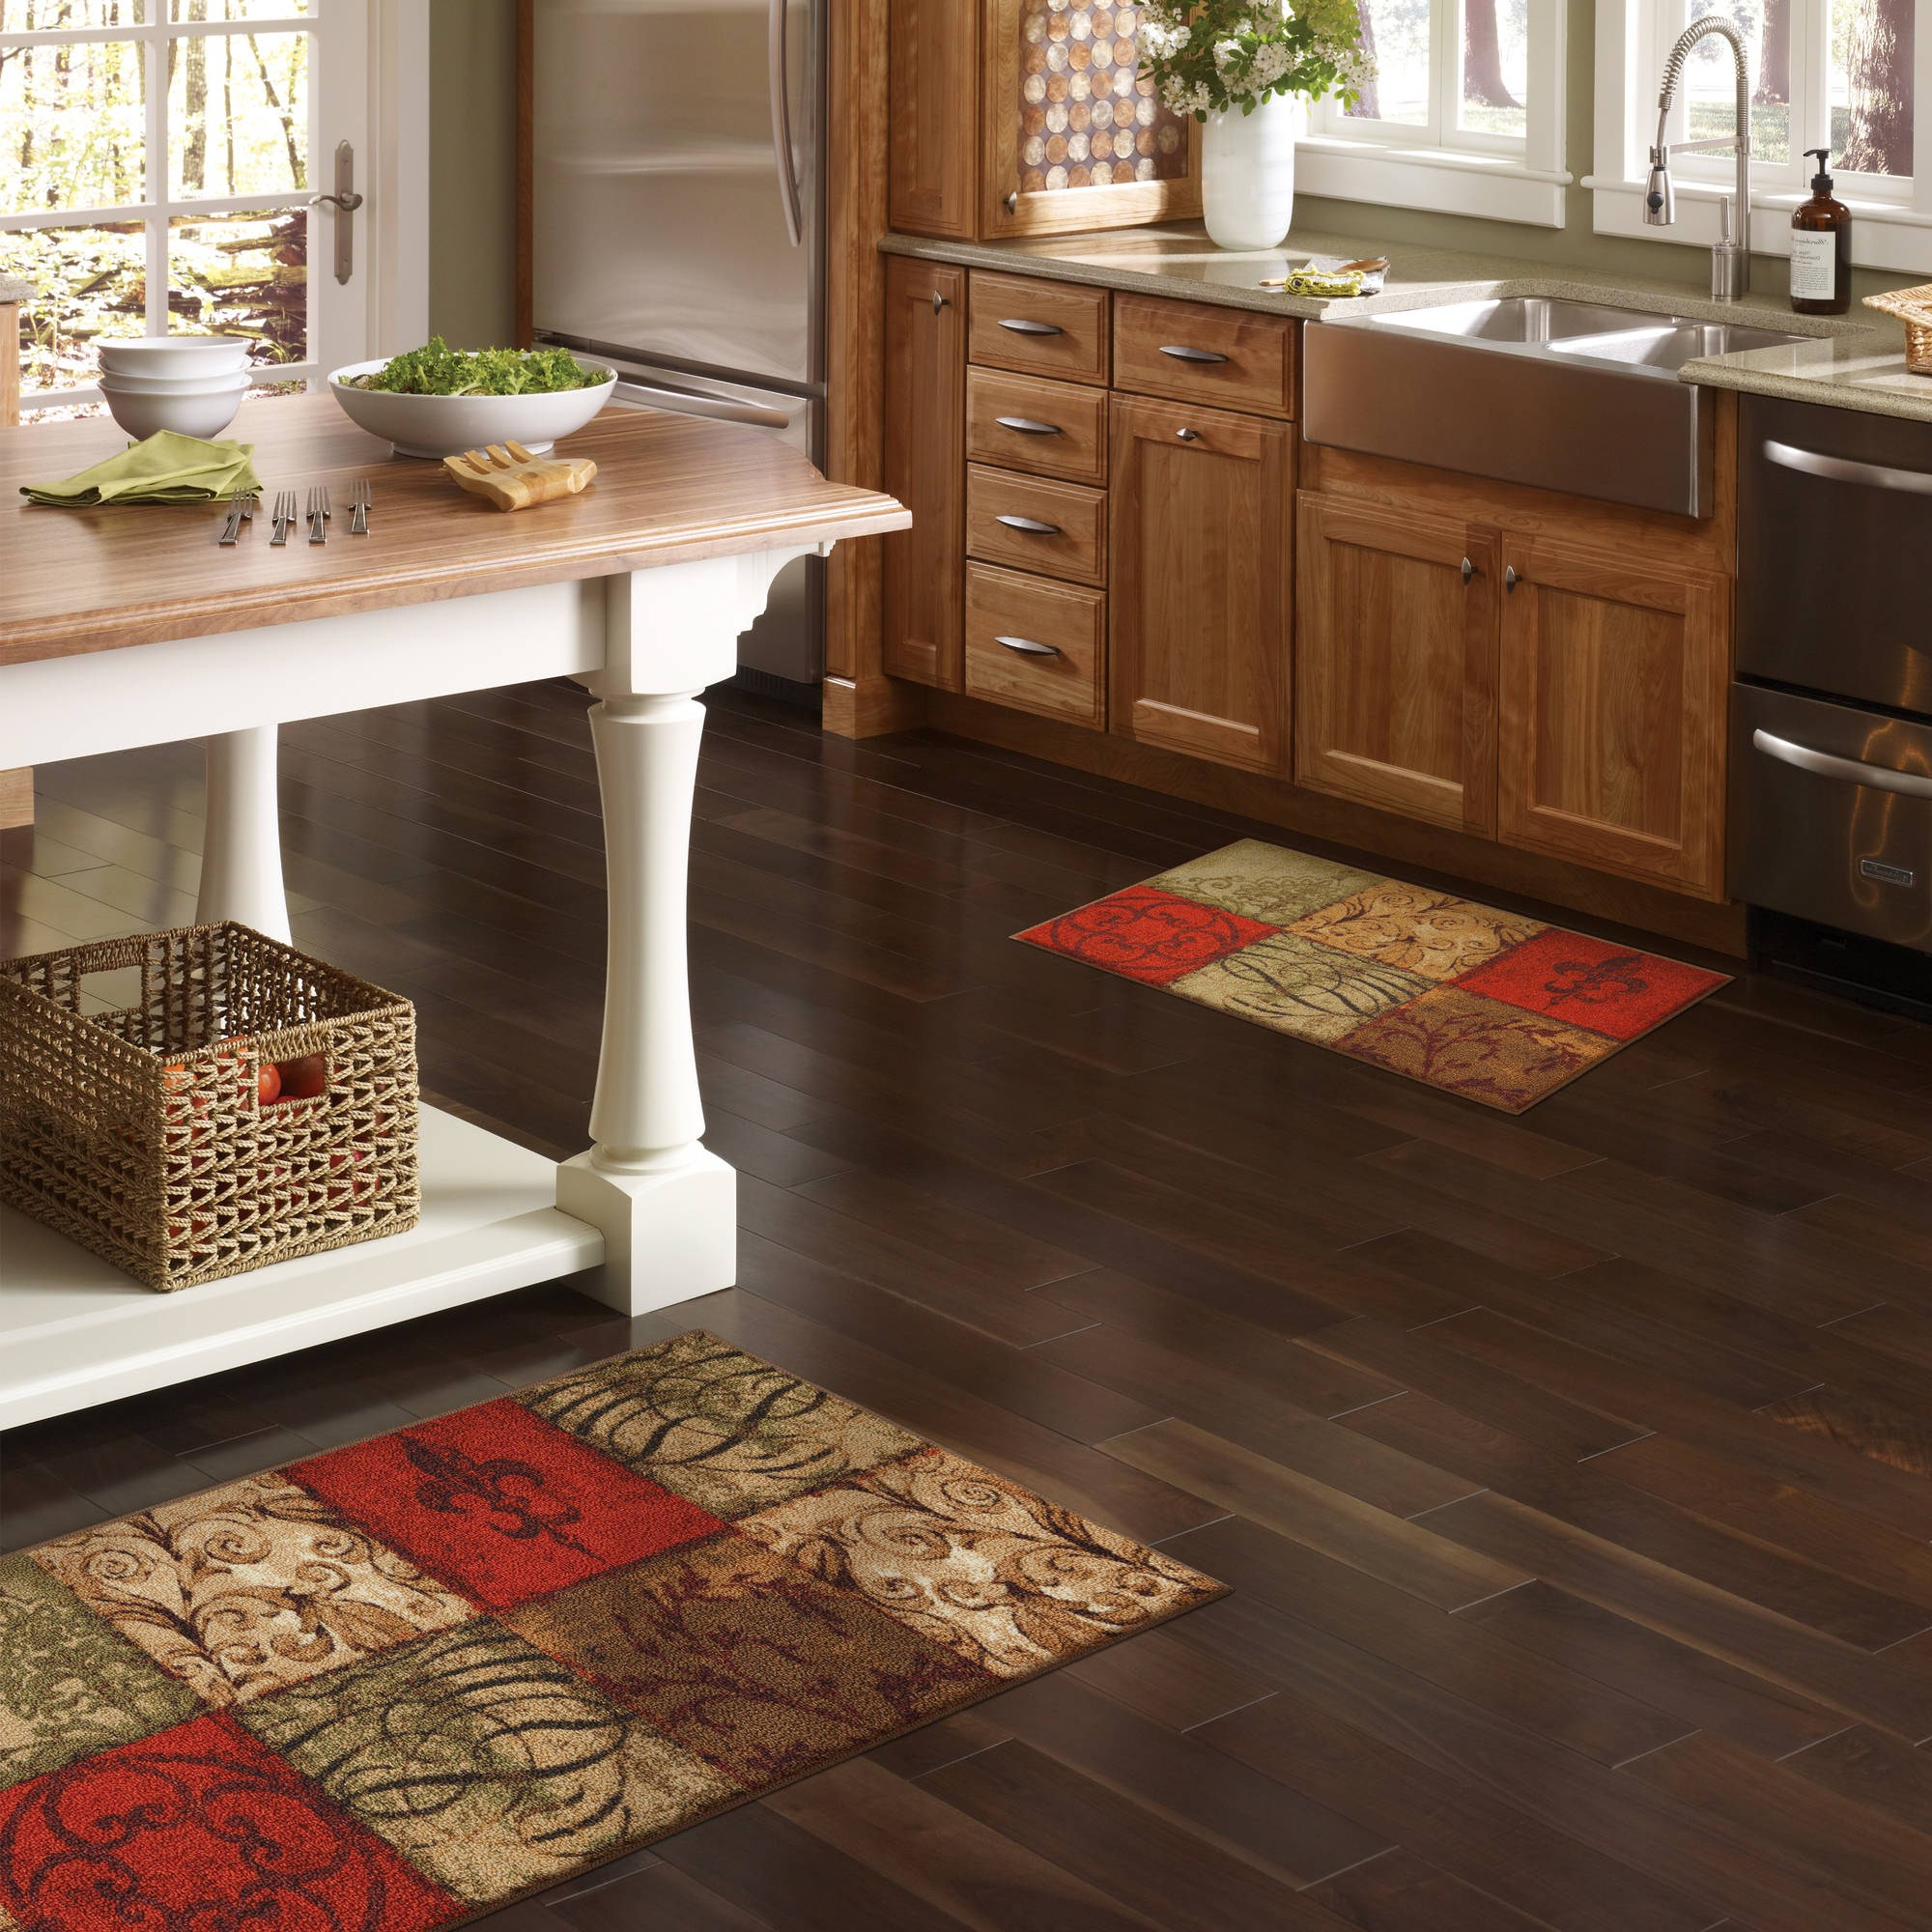 Image of: Kitchen Floor Mats Rugs